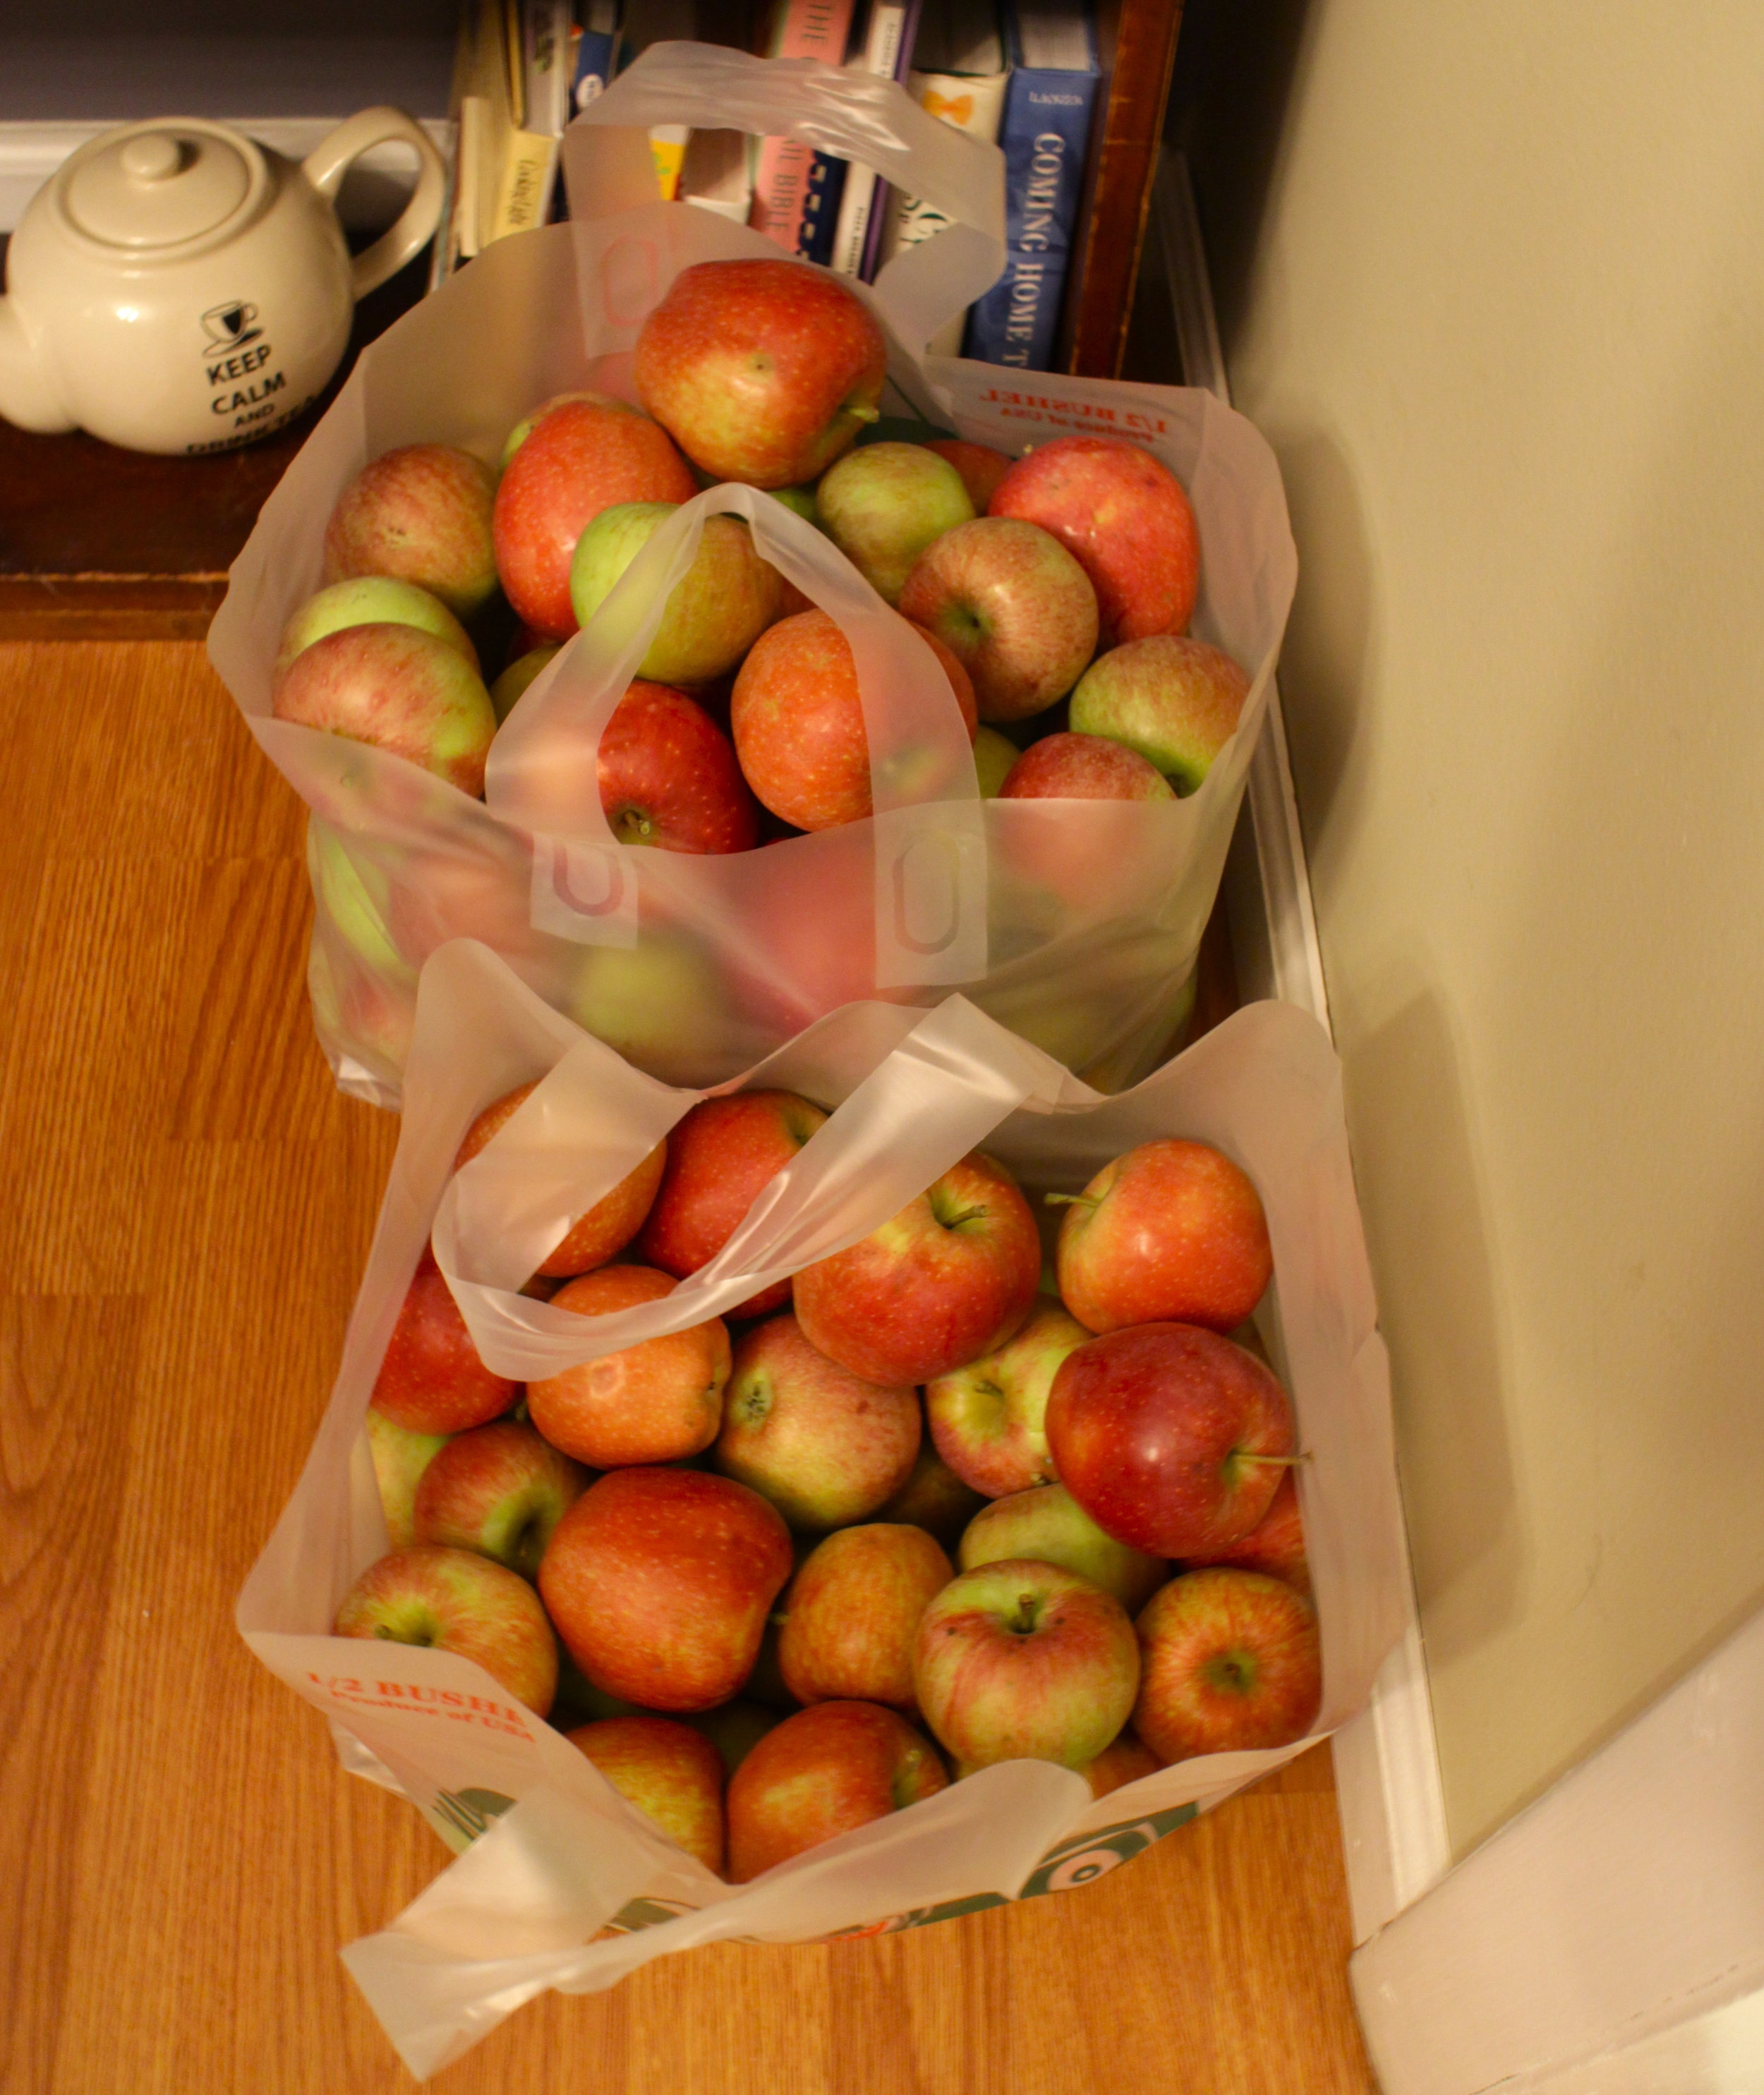 Bushels of Apples |Color Me Reckless